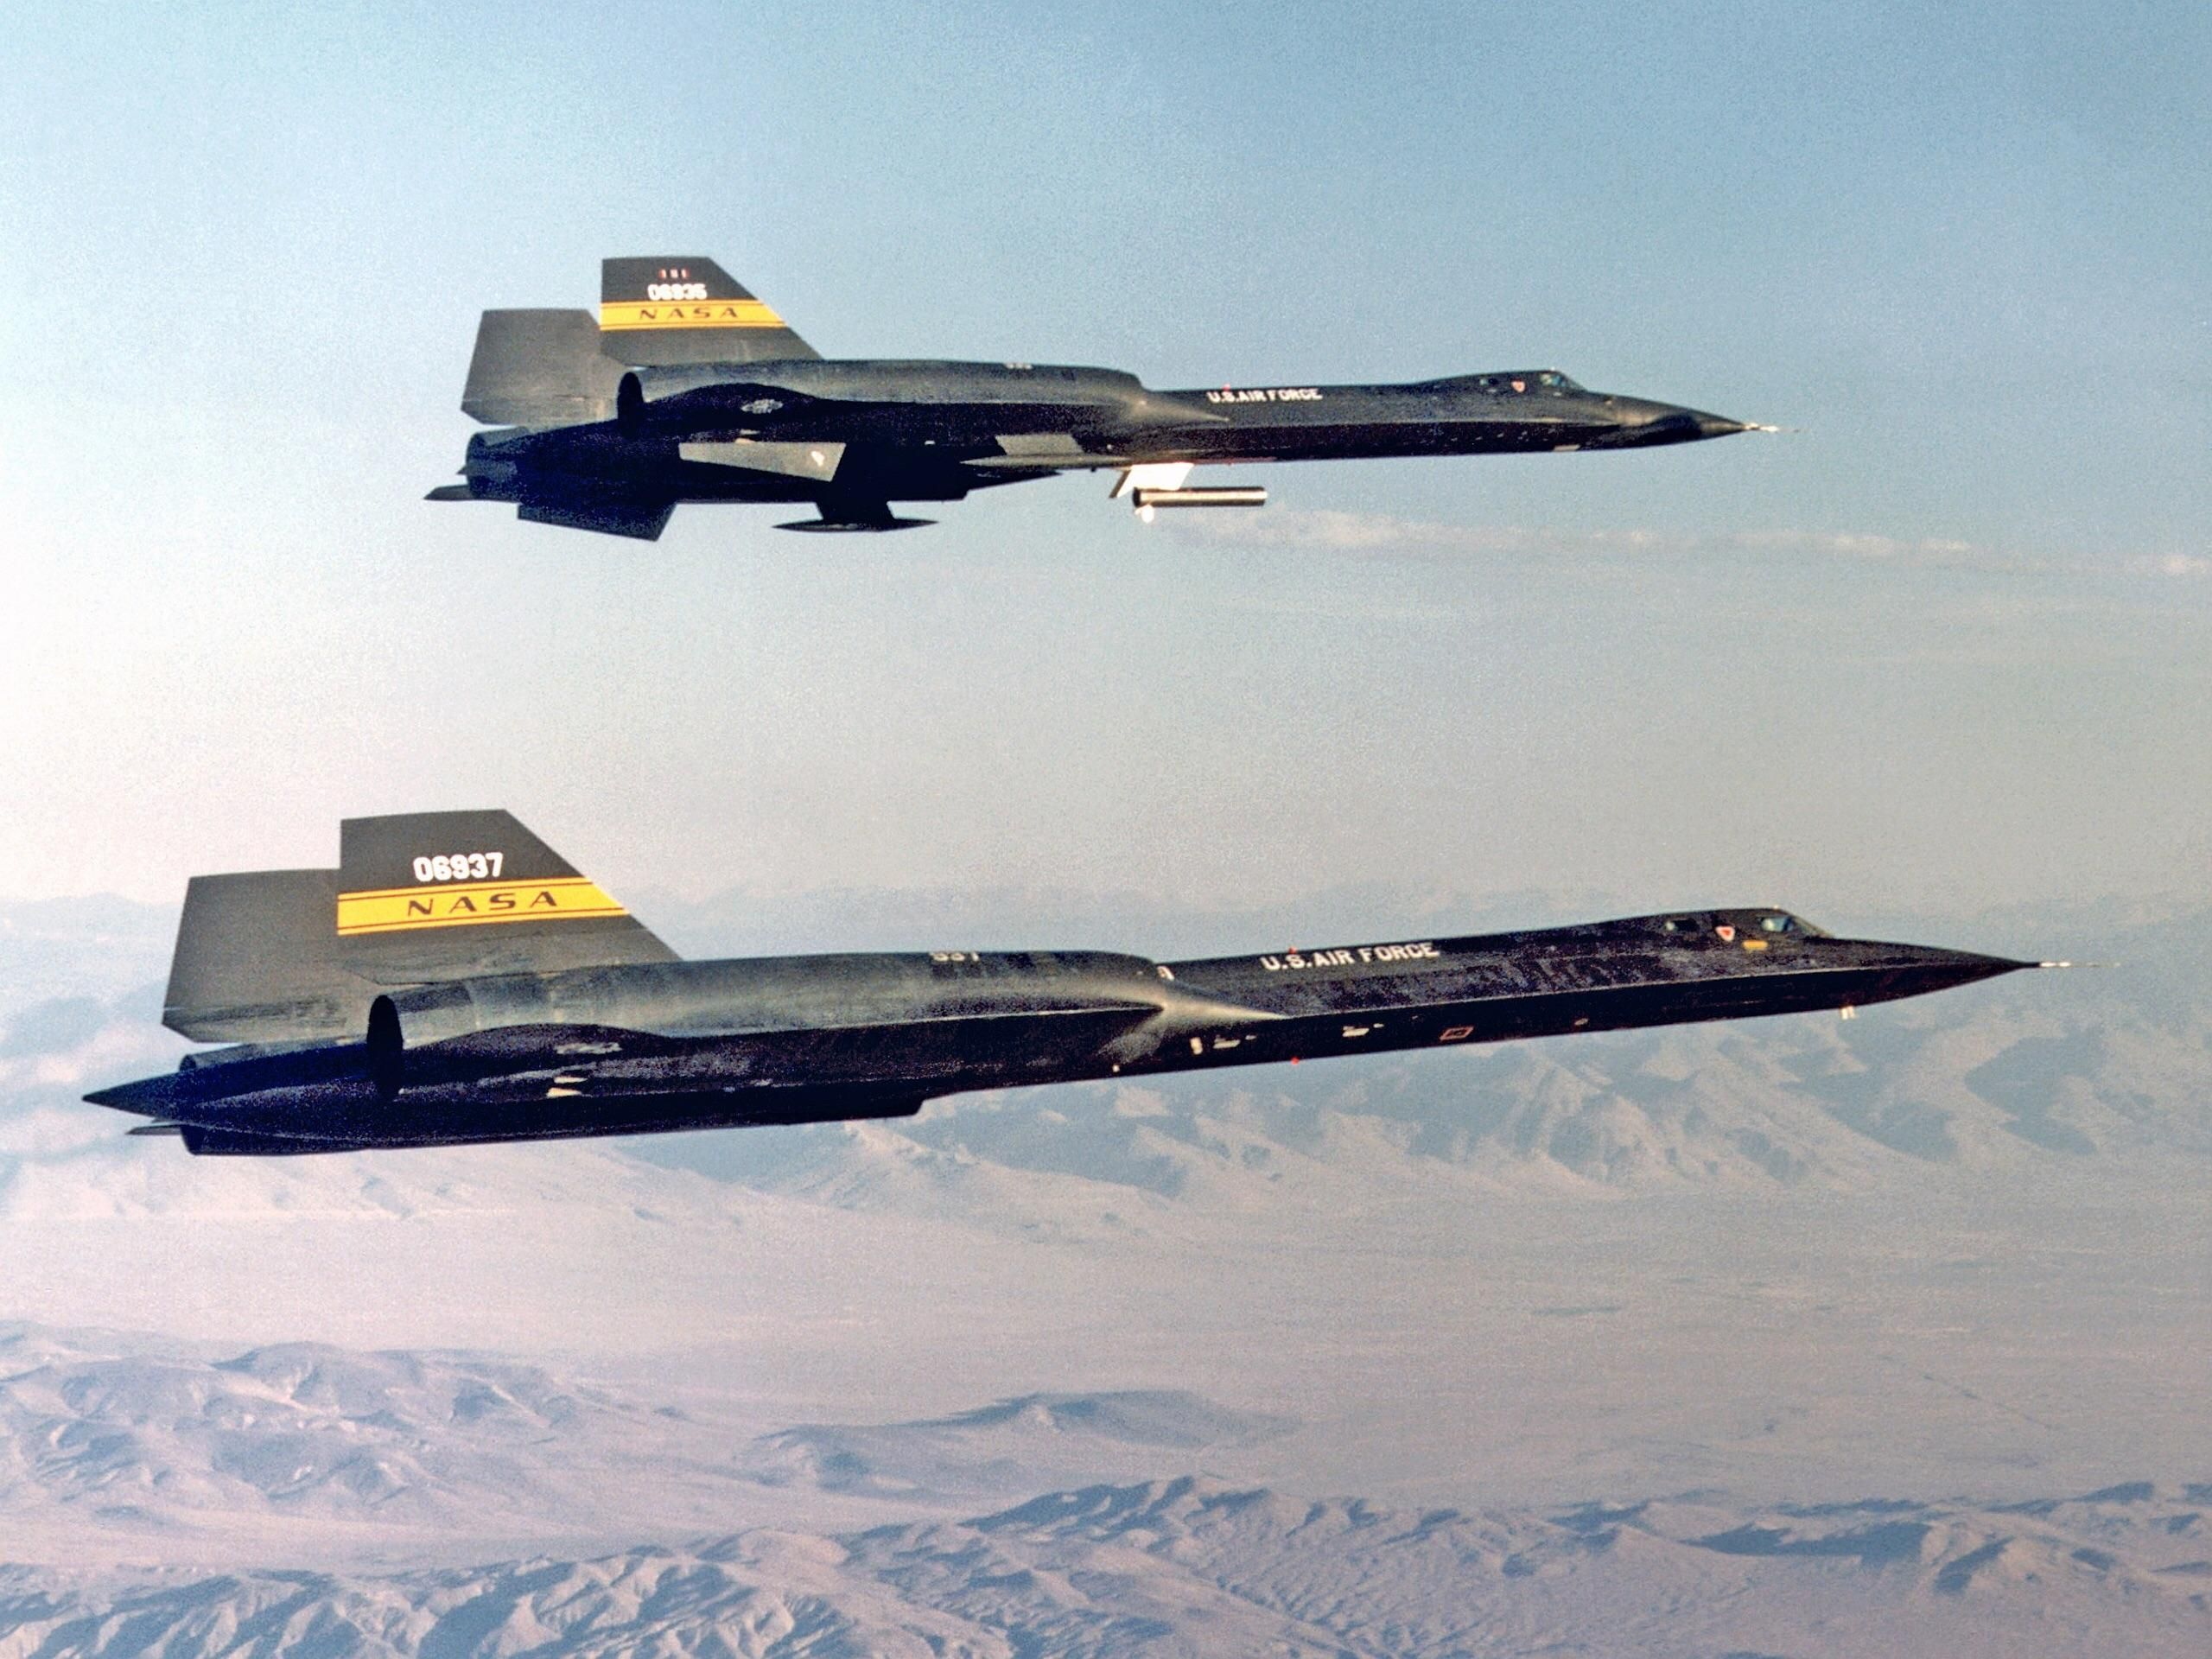 10 Secret Military Aircraft That Were Leaked To The Public